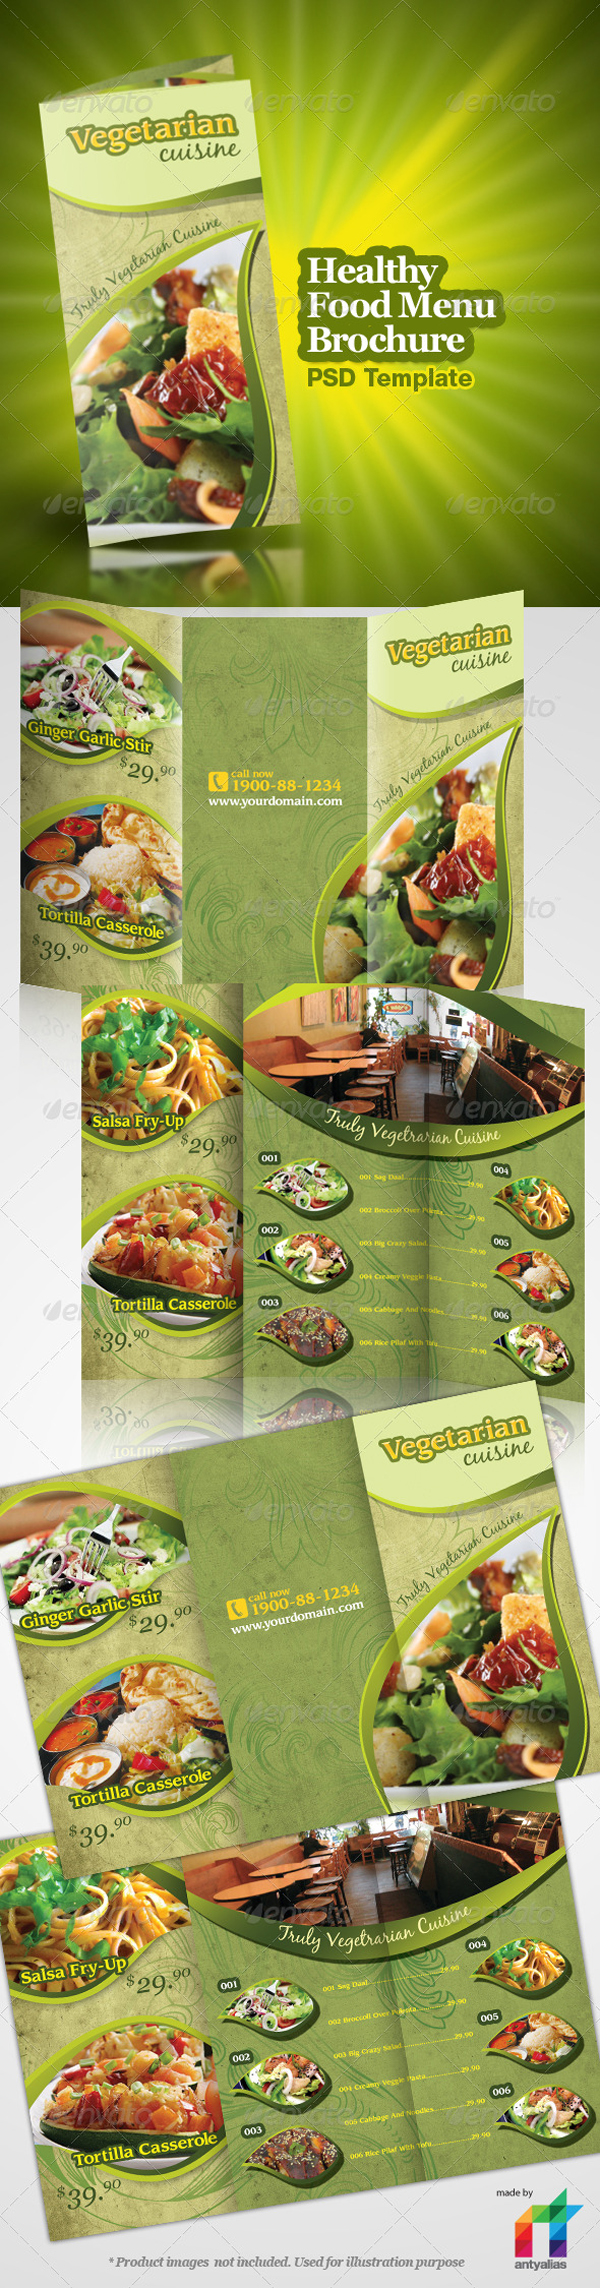 healthy_food_menu_brochure_by_antyalias-d3gh4io